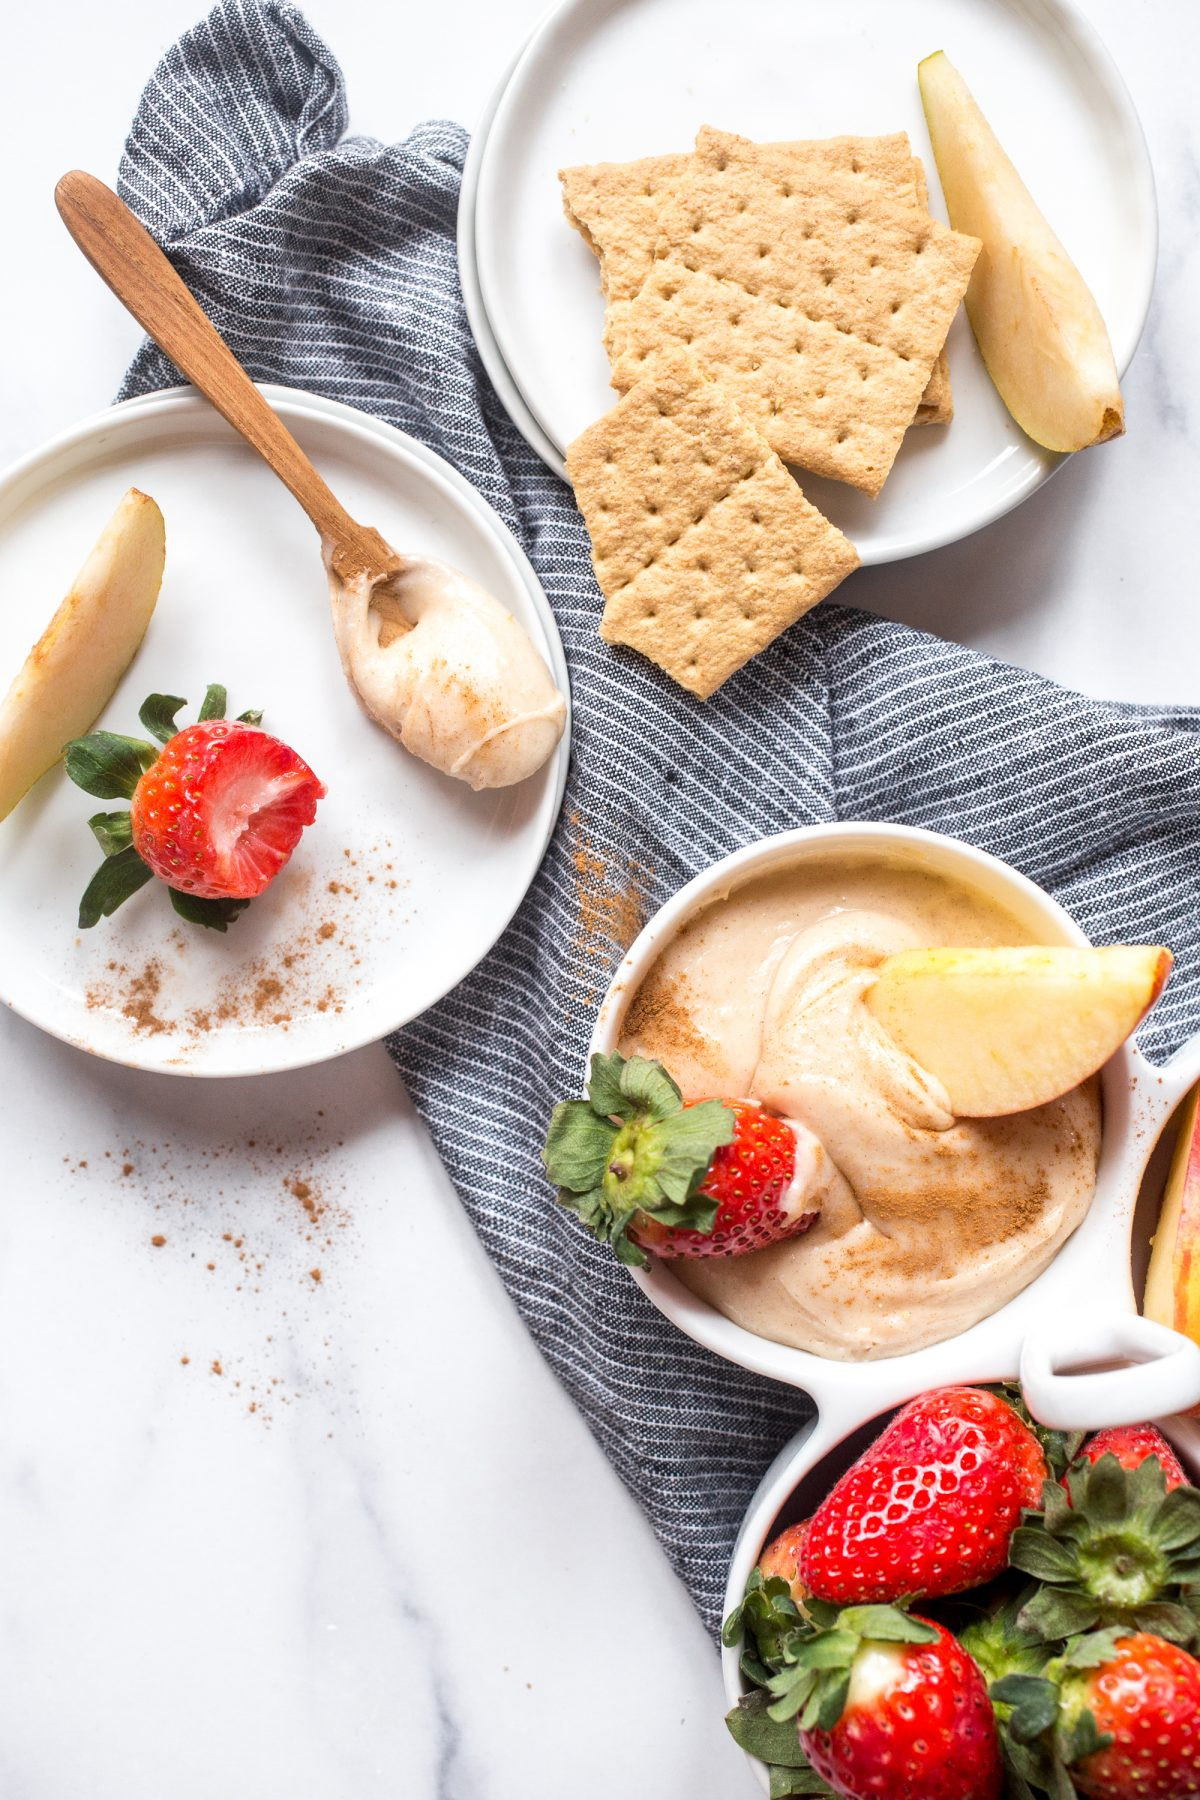 A spoonful of cream cheese dip on a small white plate with a strawberry next to more dip and strawberries